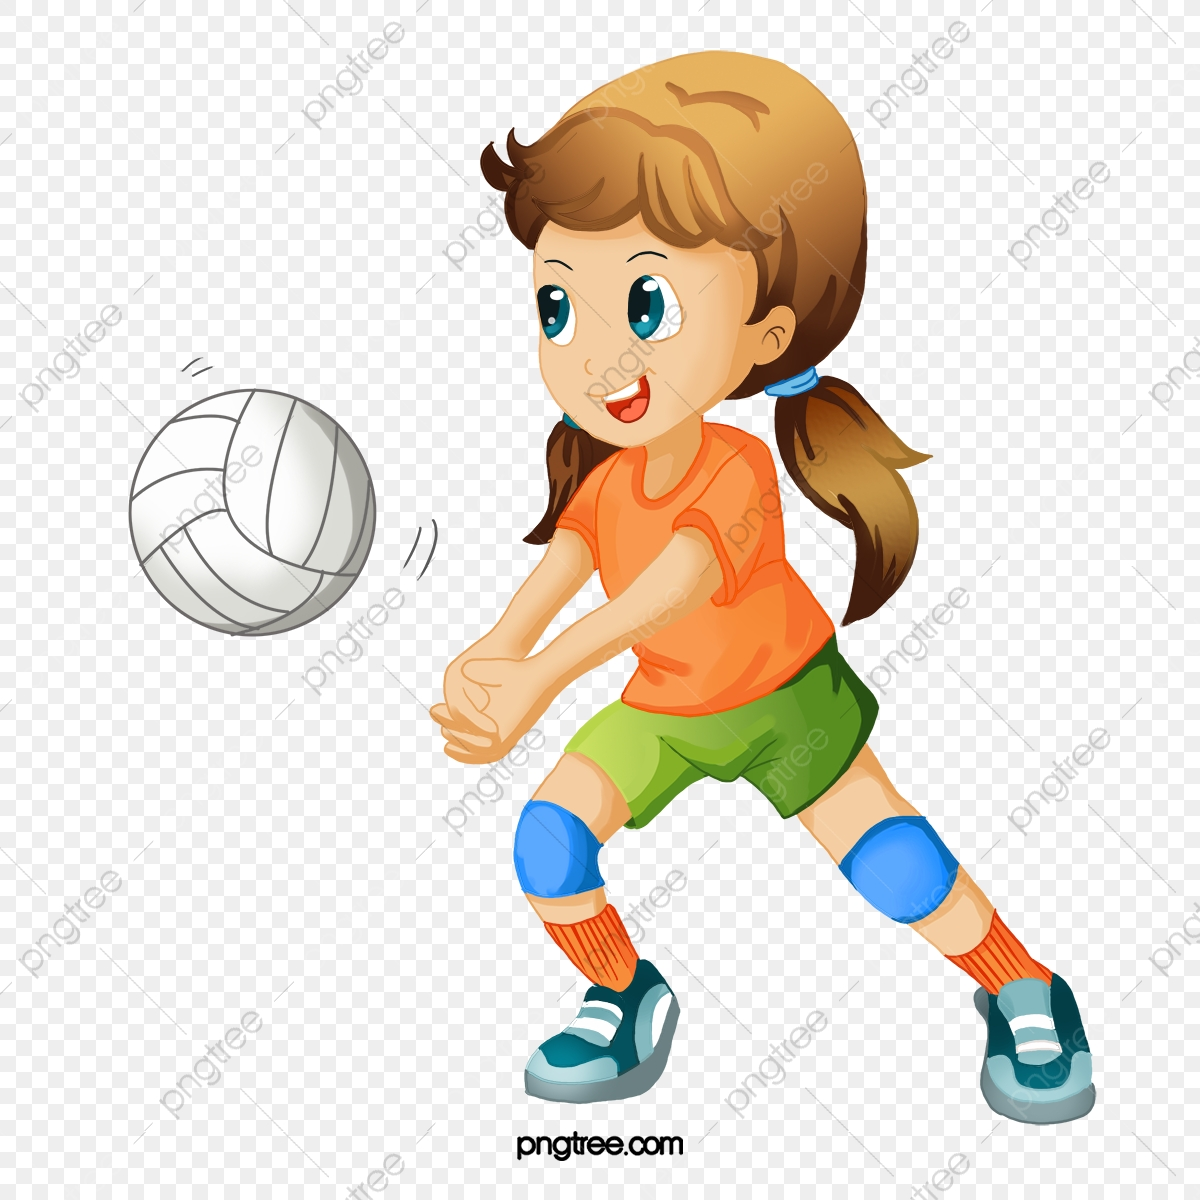 Hand painted cartoon playing. Volleyball clipart server